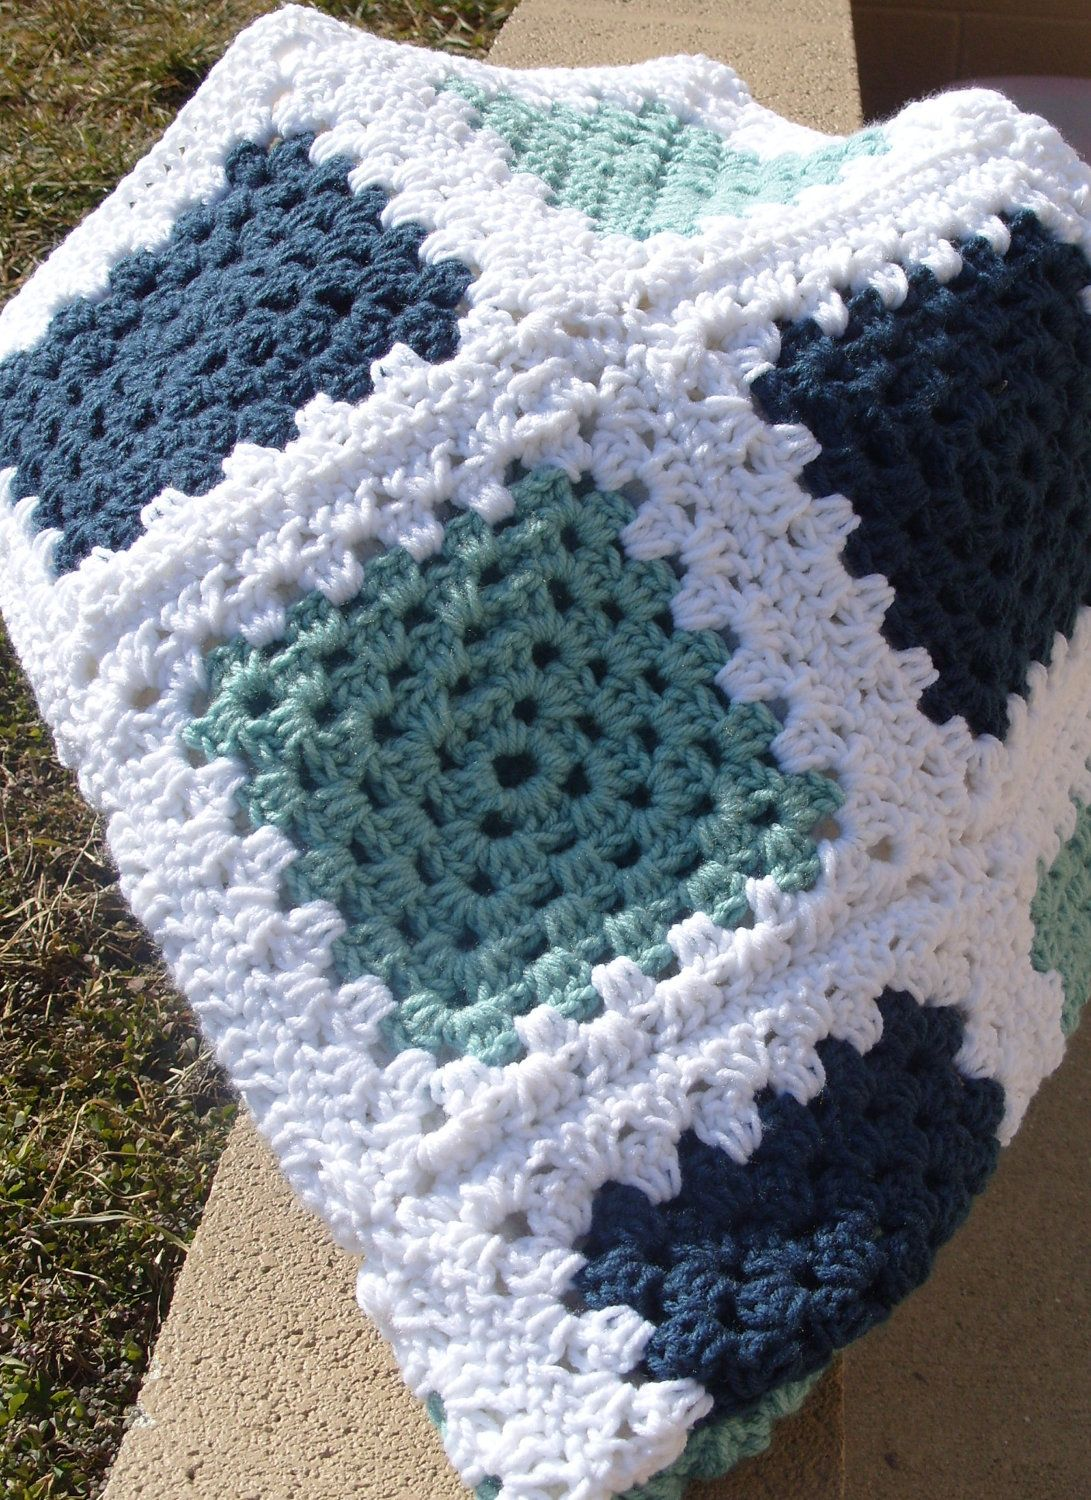 Crochet afghan blue green and white granny by klickin2kneedles crochet afghan blue green and white granny by klickin2kneedles bankloansurffo Gallery